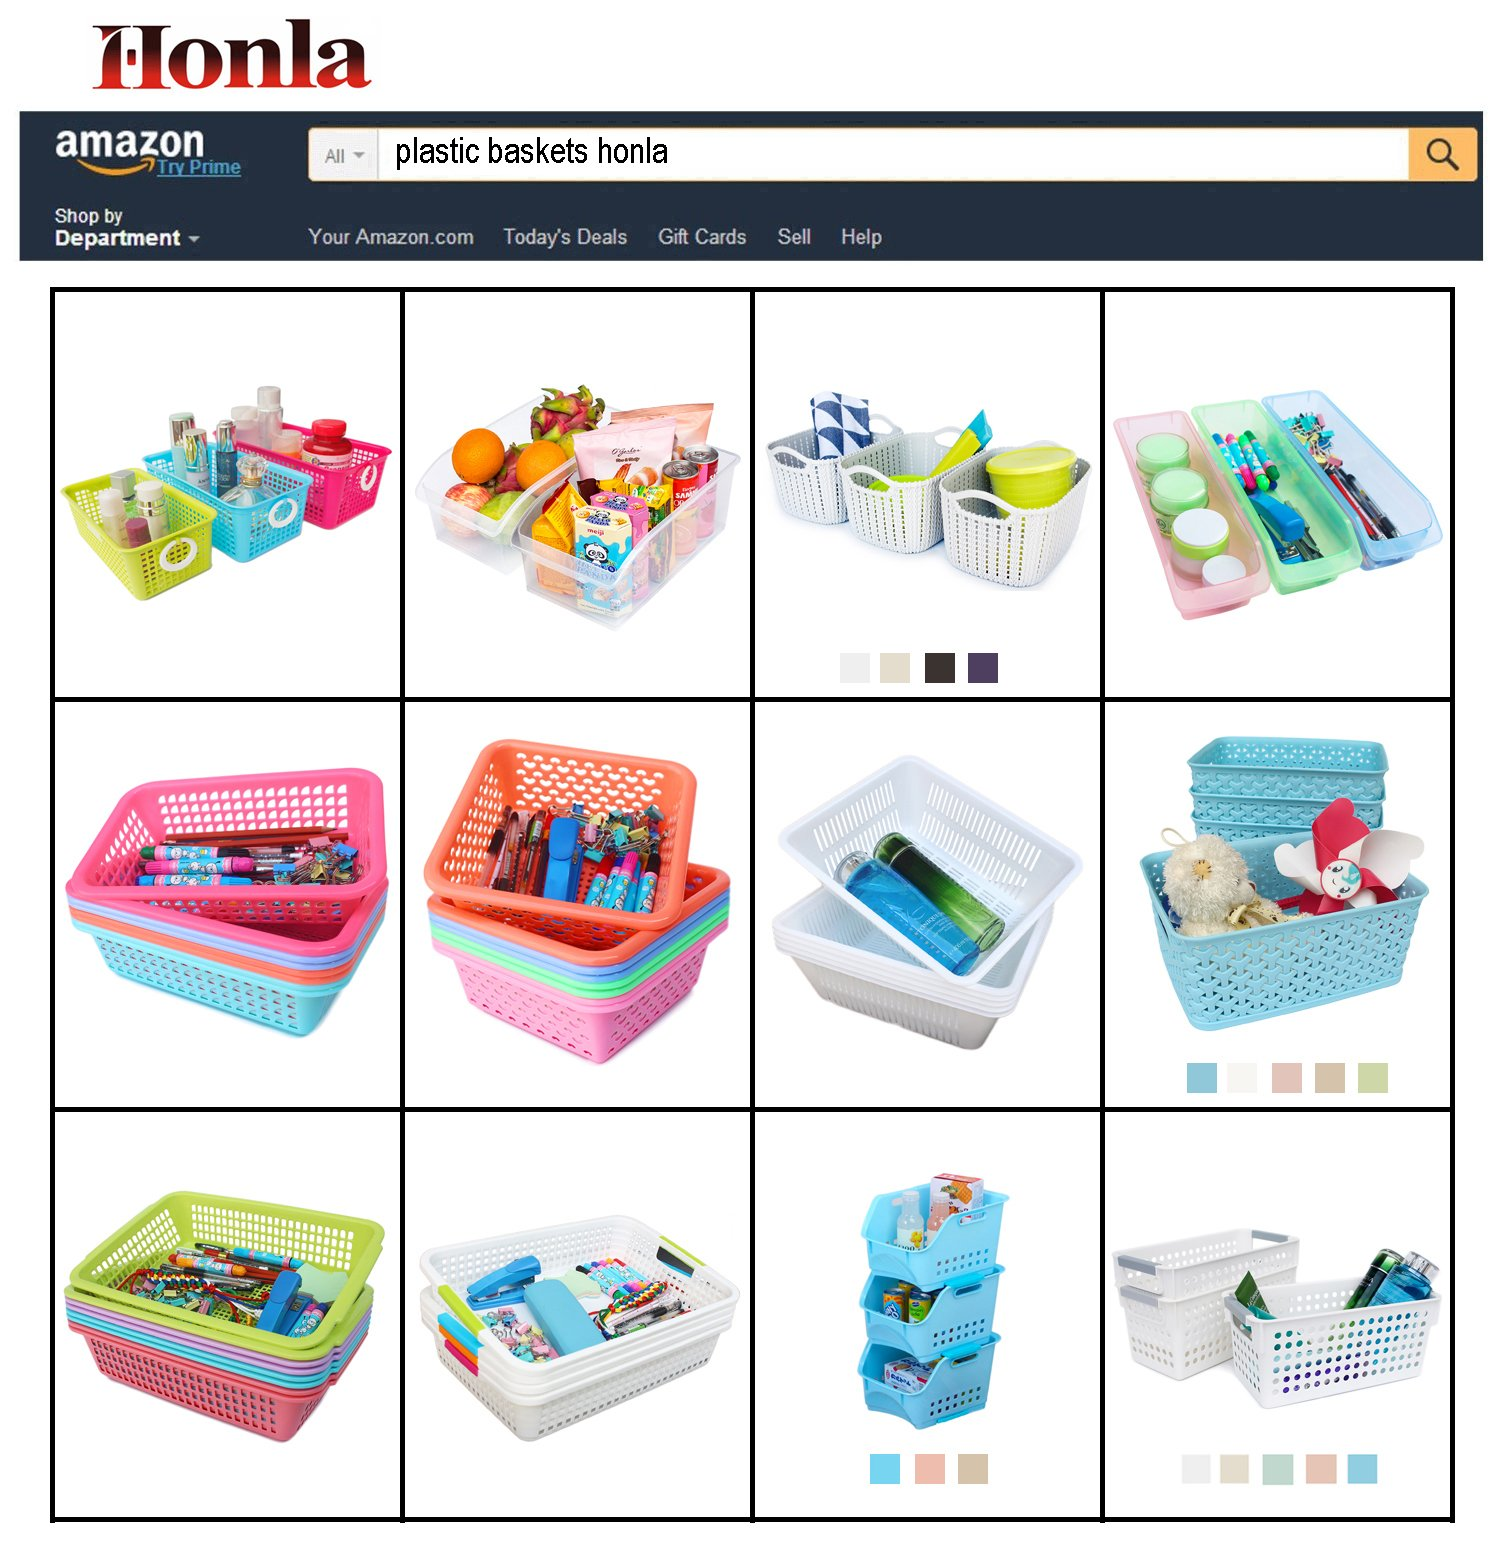 Honla Silicone Oven Mitts - Heat Resistant to 500° F,1 Pair of Non-Slip Kitchen Oven Gloves for Cooking,Baking,Grilling,Barbecue Potholders,Black by Honla (Image #8)